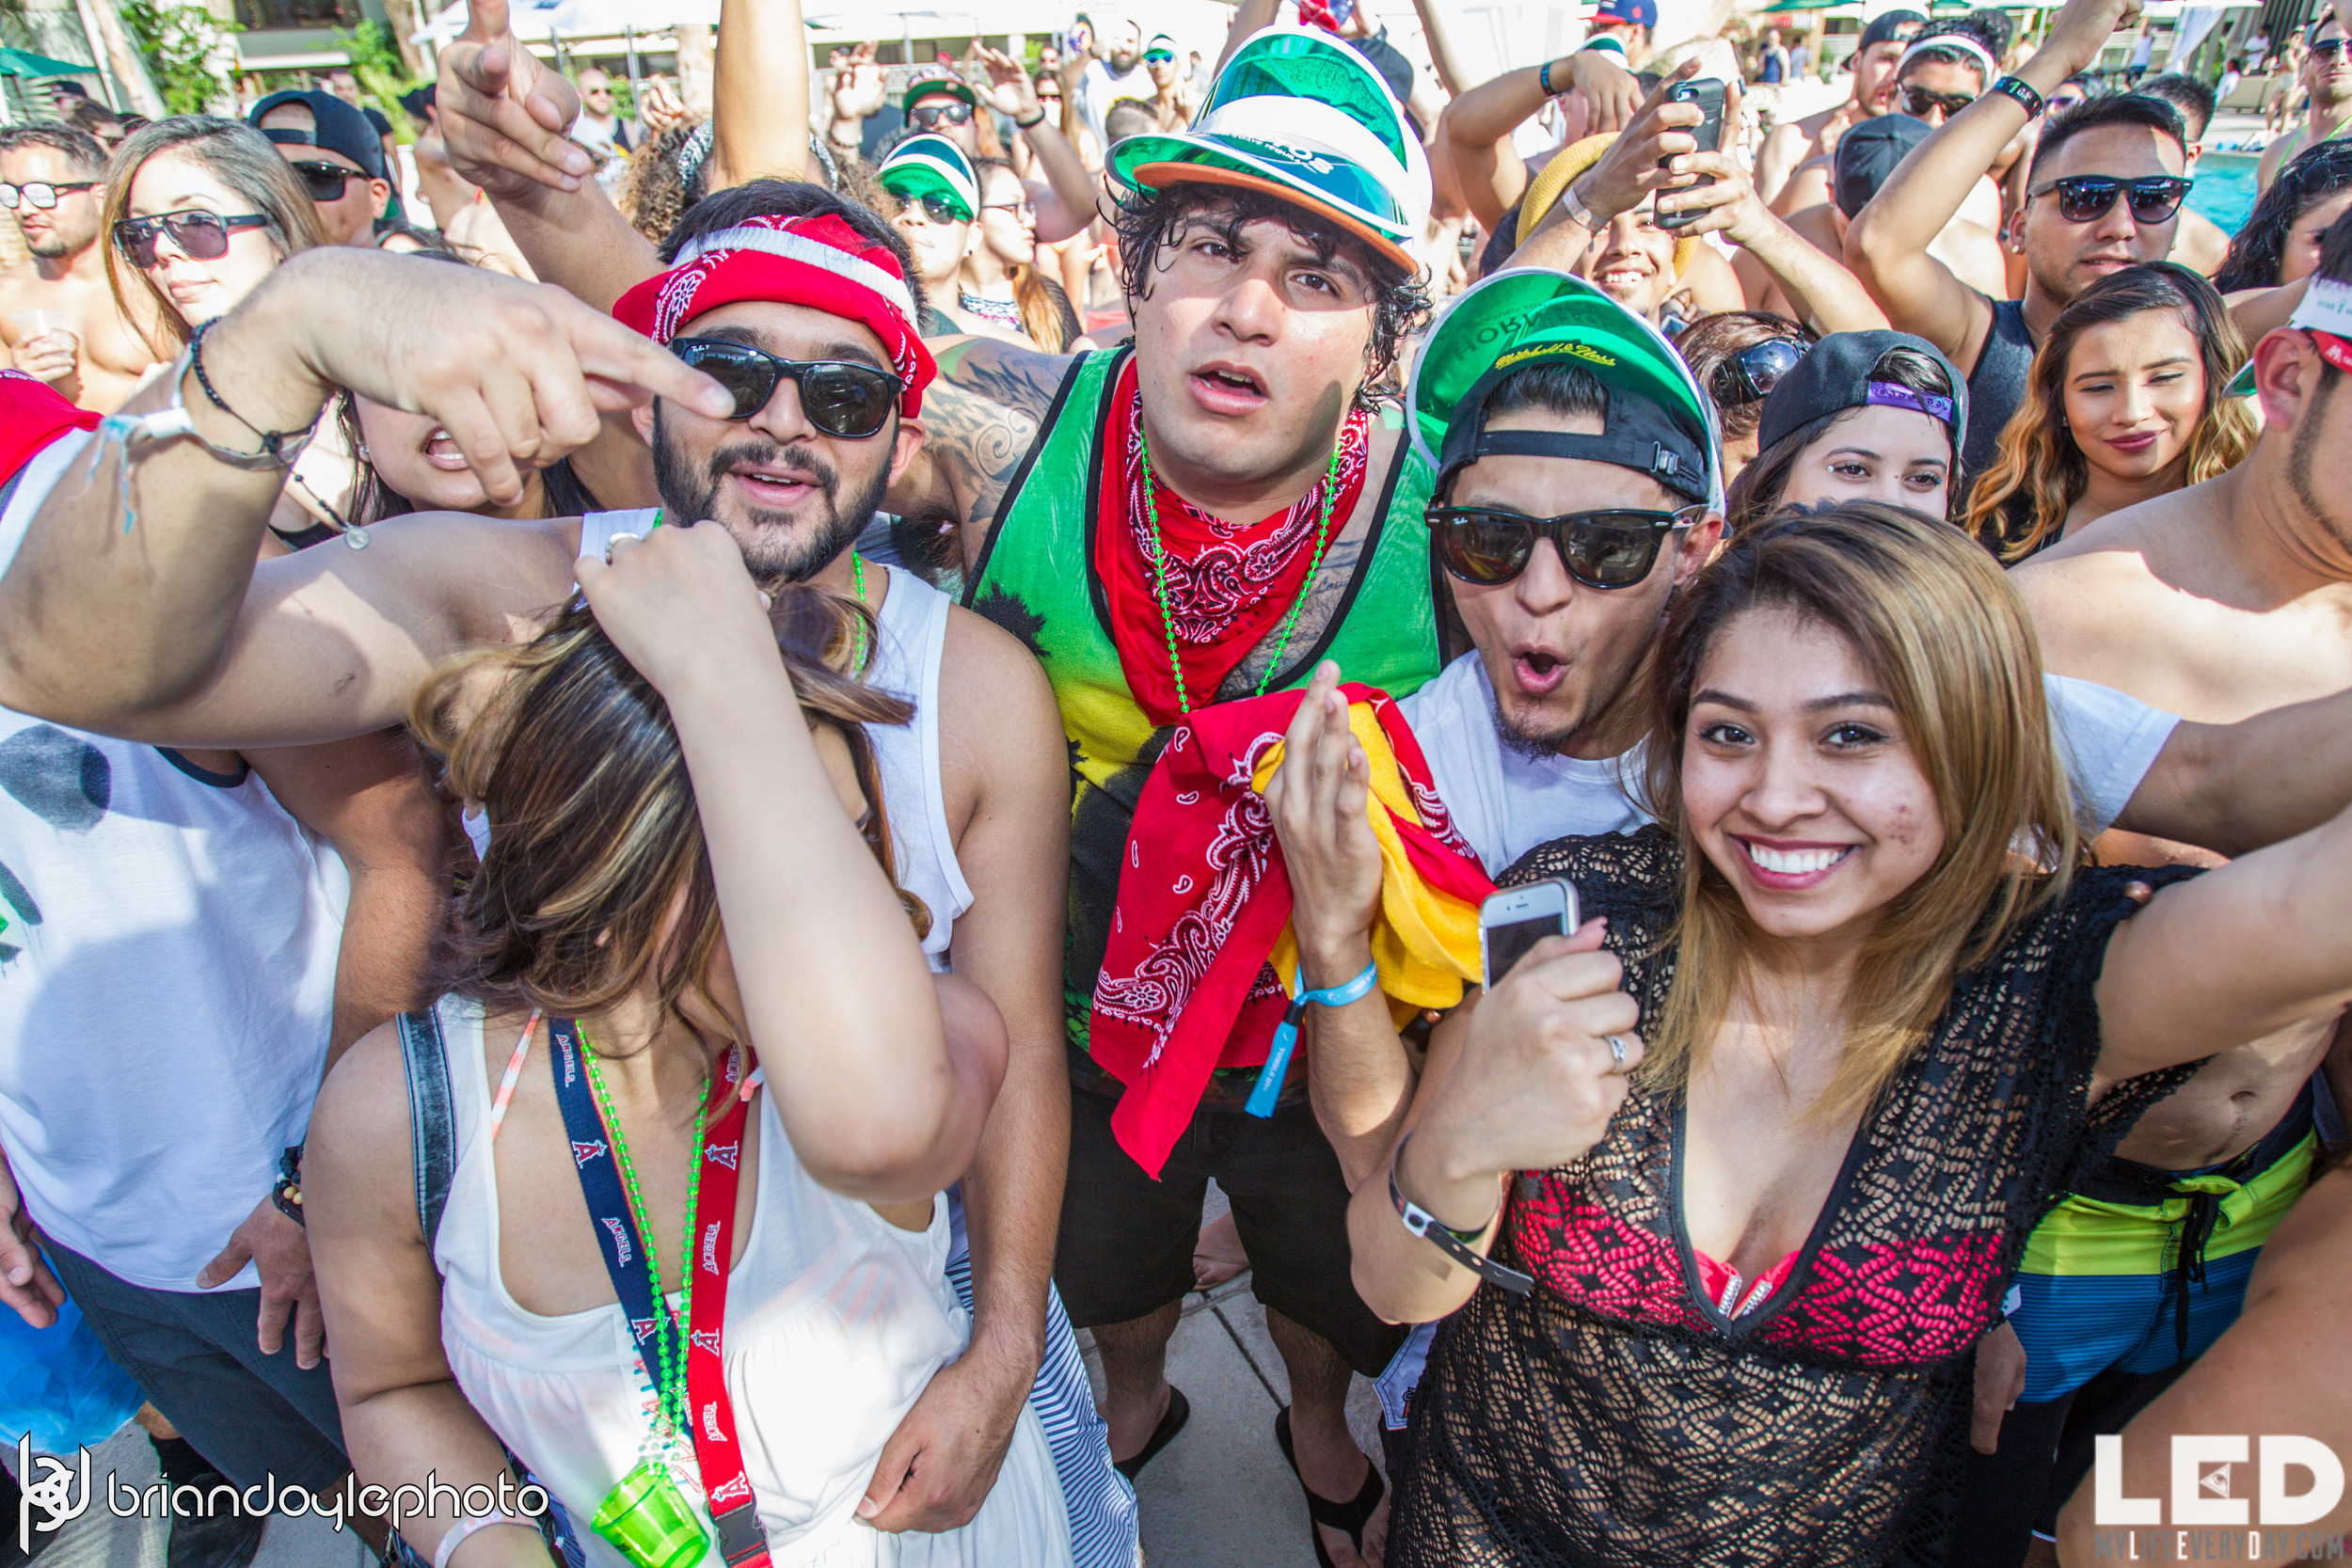 LED Day Club Day 2  Deorro and Chris 04.10.2015-45.jpg